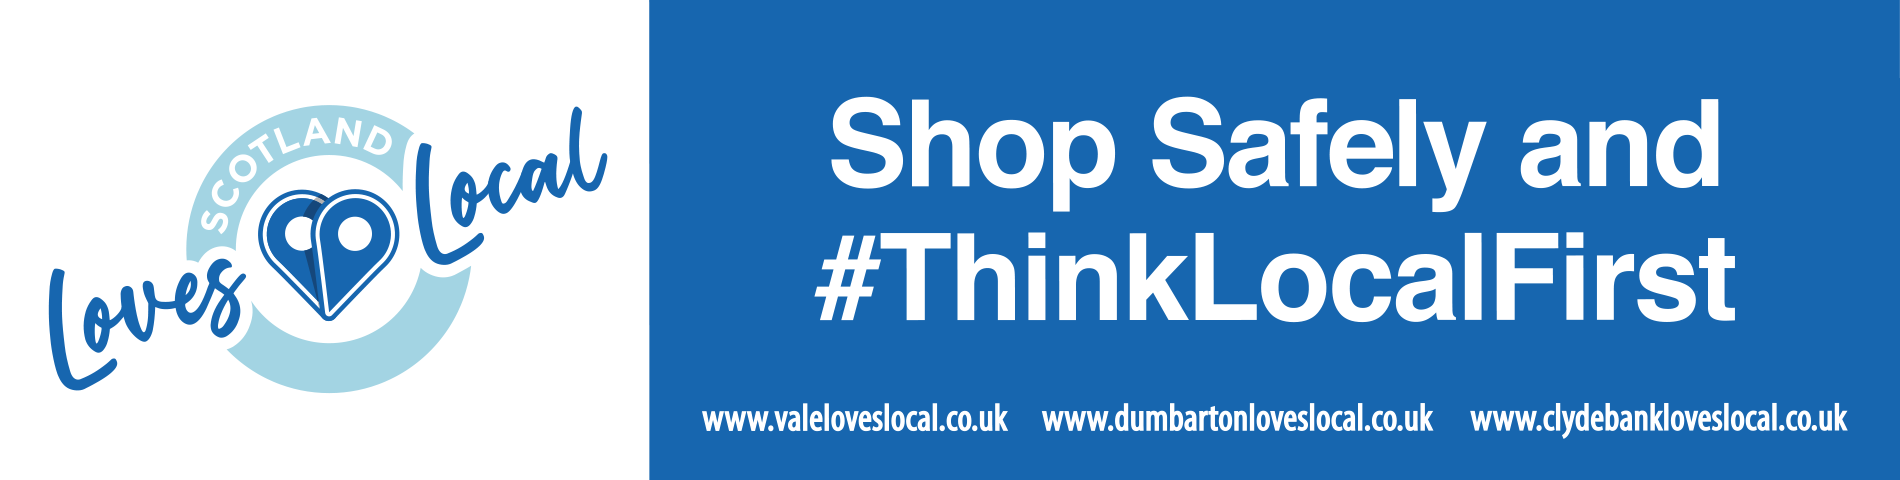 Shop safely and #ThinkLocalFirst